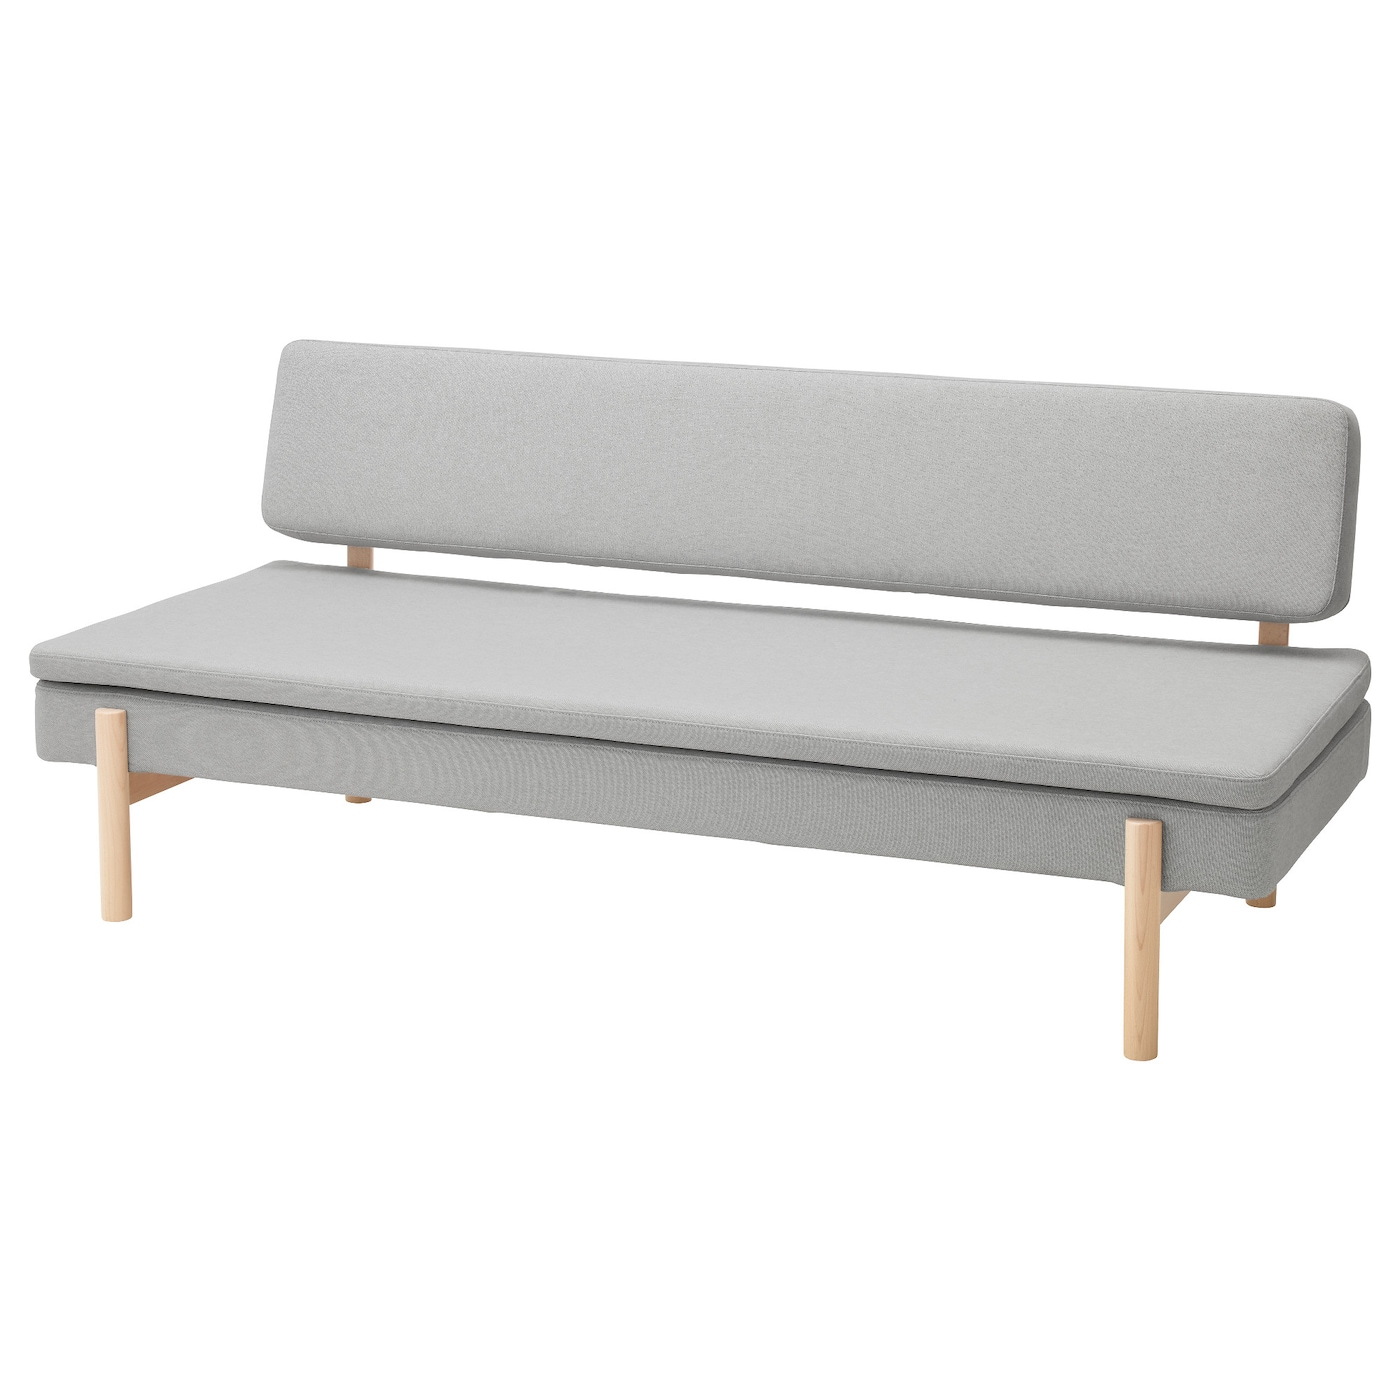 YPPERLIG 3 seat sofa bed Ramna light grey IKEA